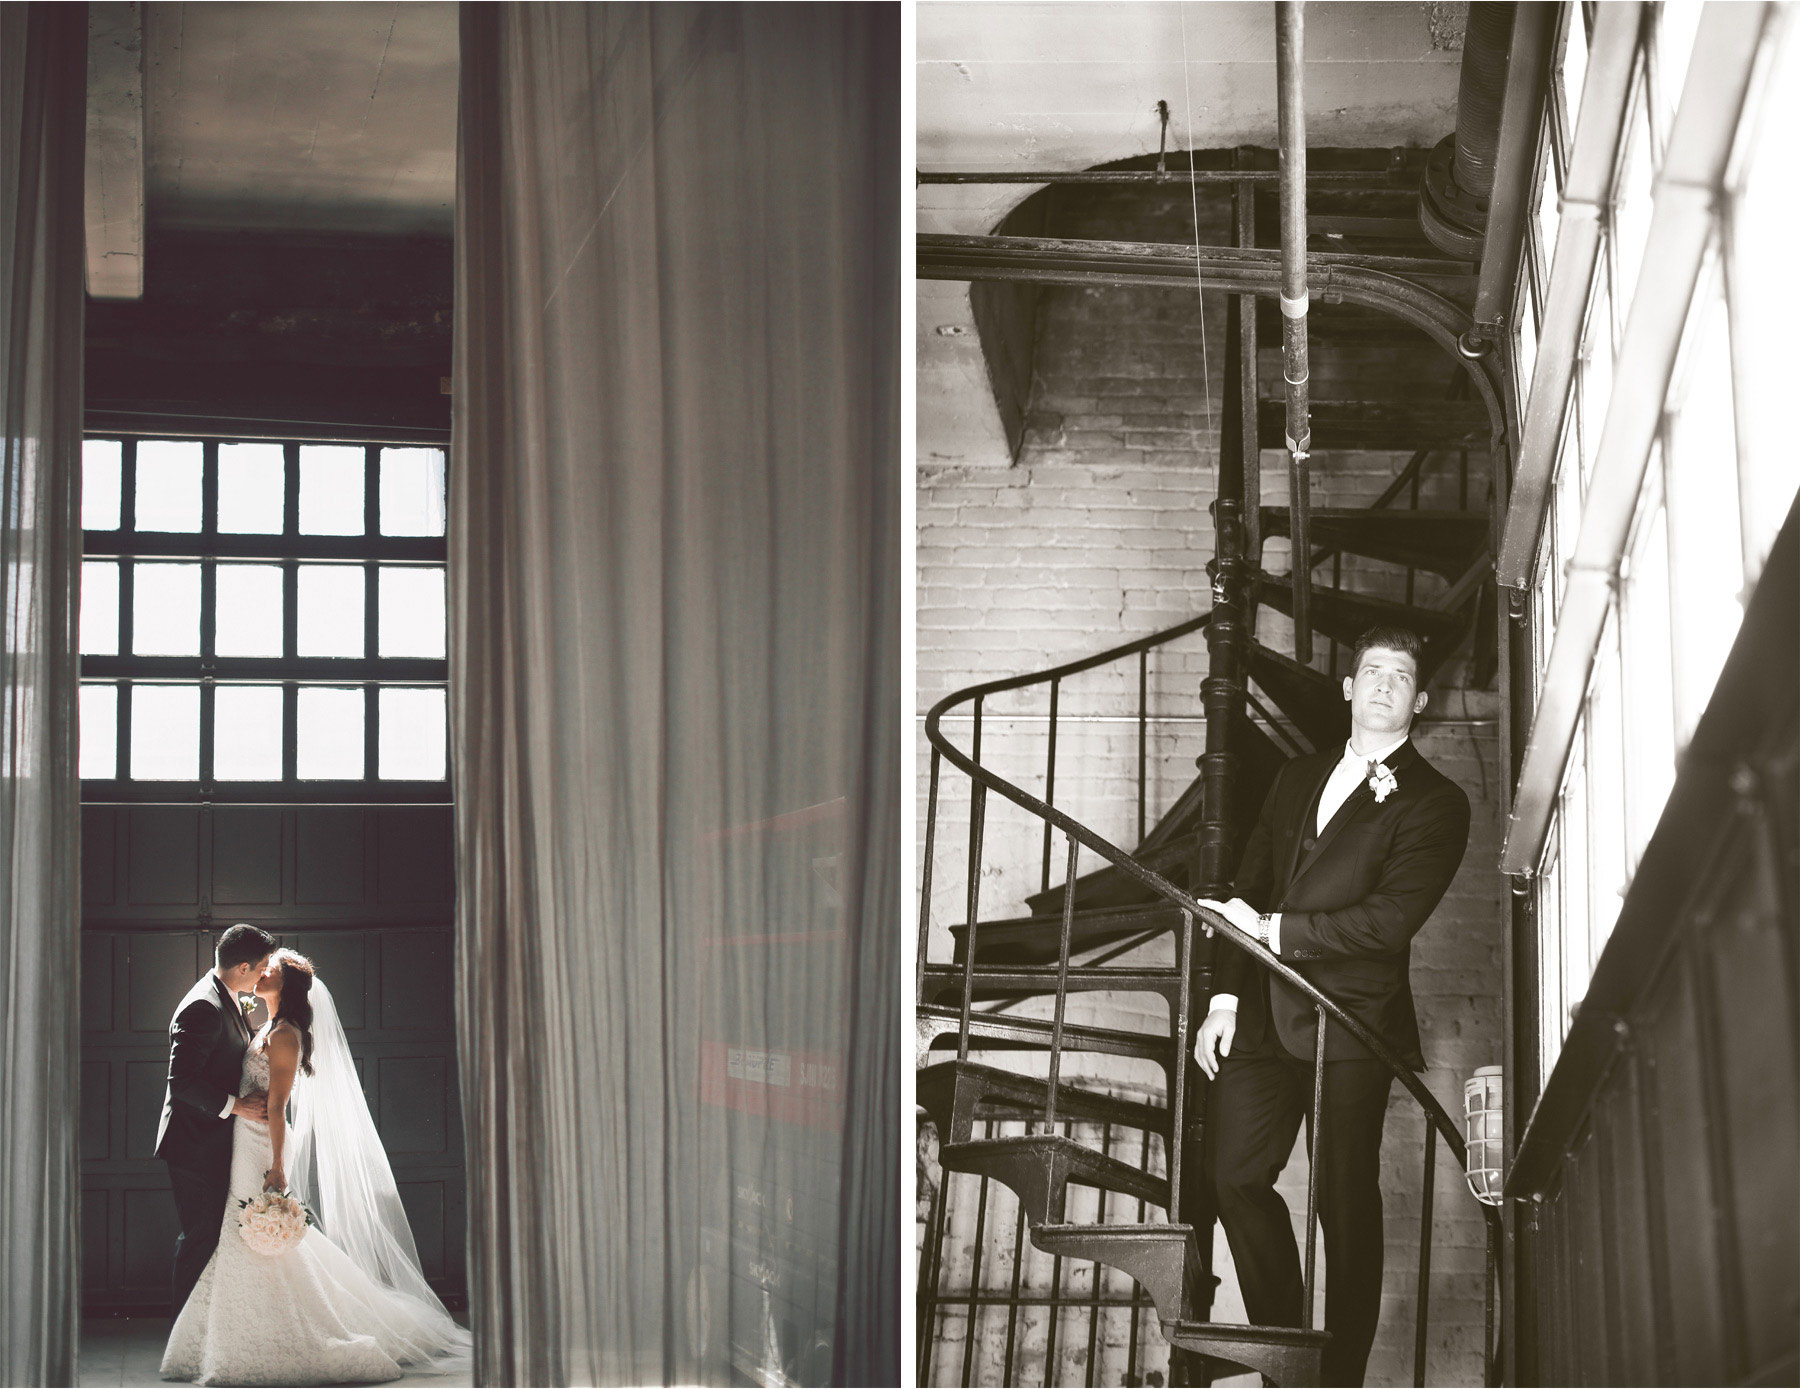 07-Minneapolis-Minnesota-Wedding-Photographer-by-Andrew-Vick-Photography-Aria-Spring-First-Meeting-Look-Bride-Groom-Embrace-Kiss-Sprial-Stairecase-Stairs-Black-and-White-Alex-and-Andy.jpg